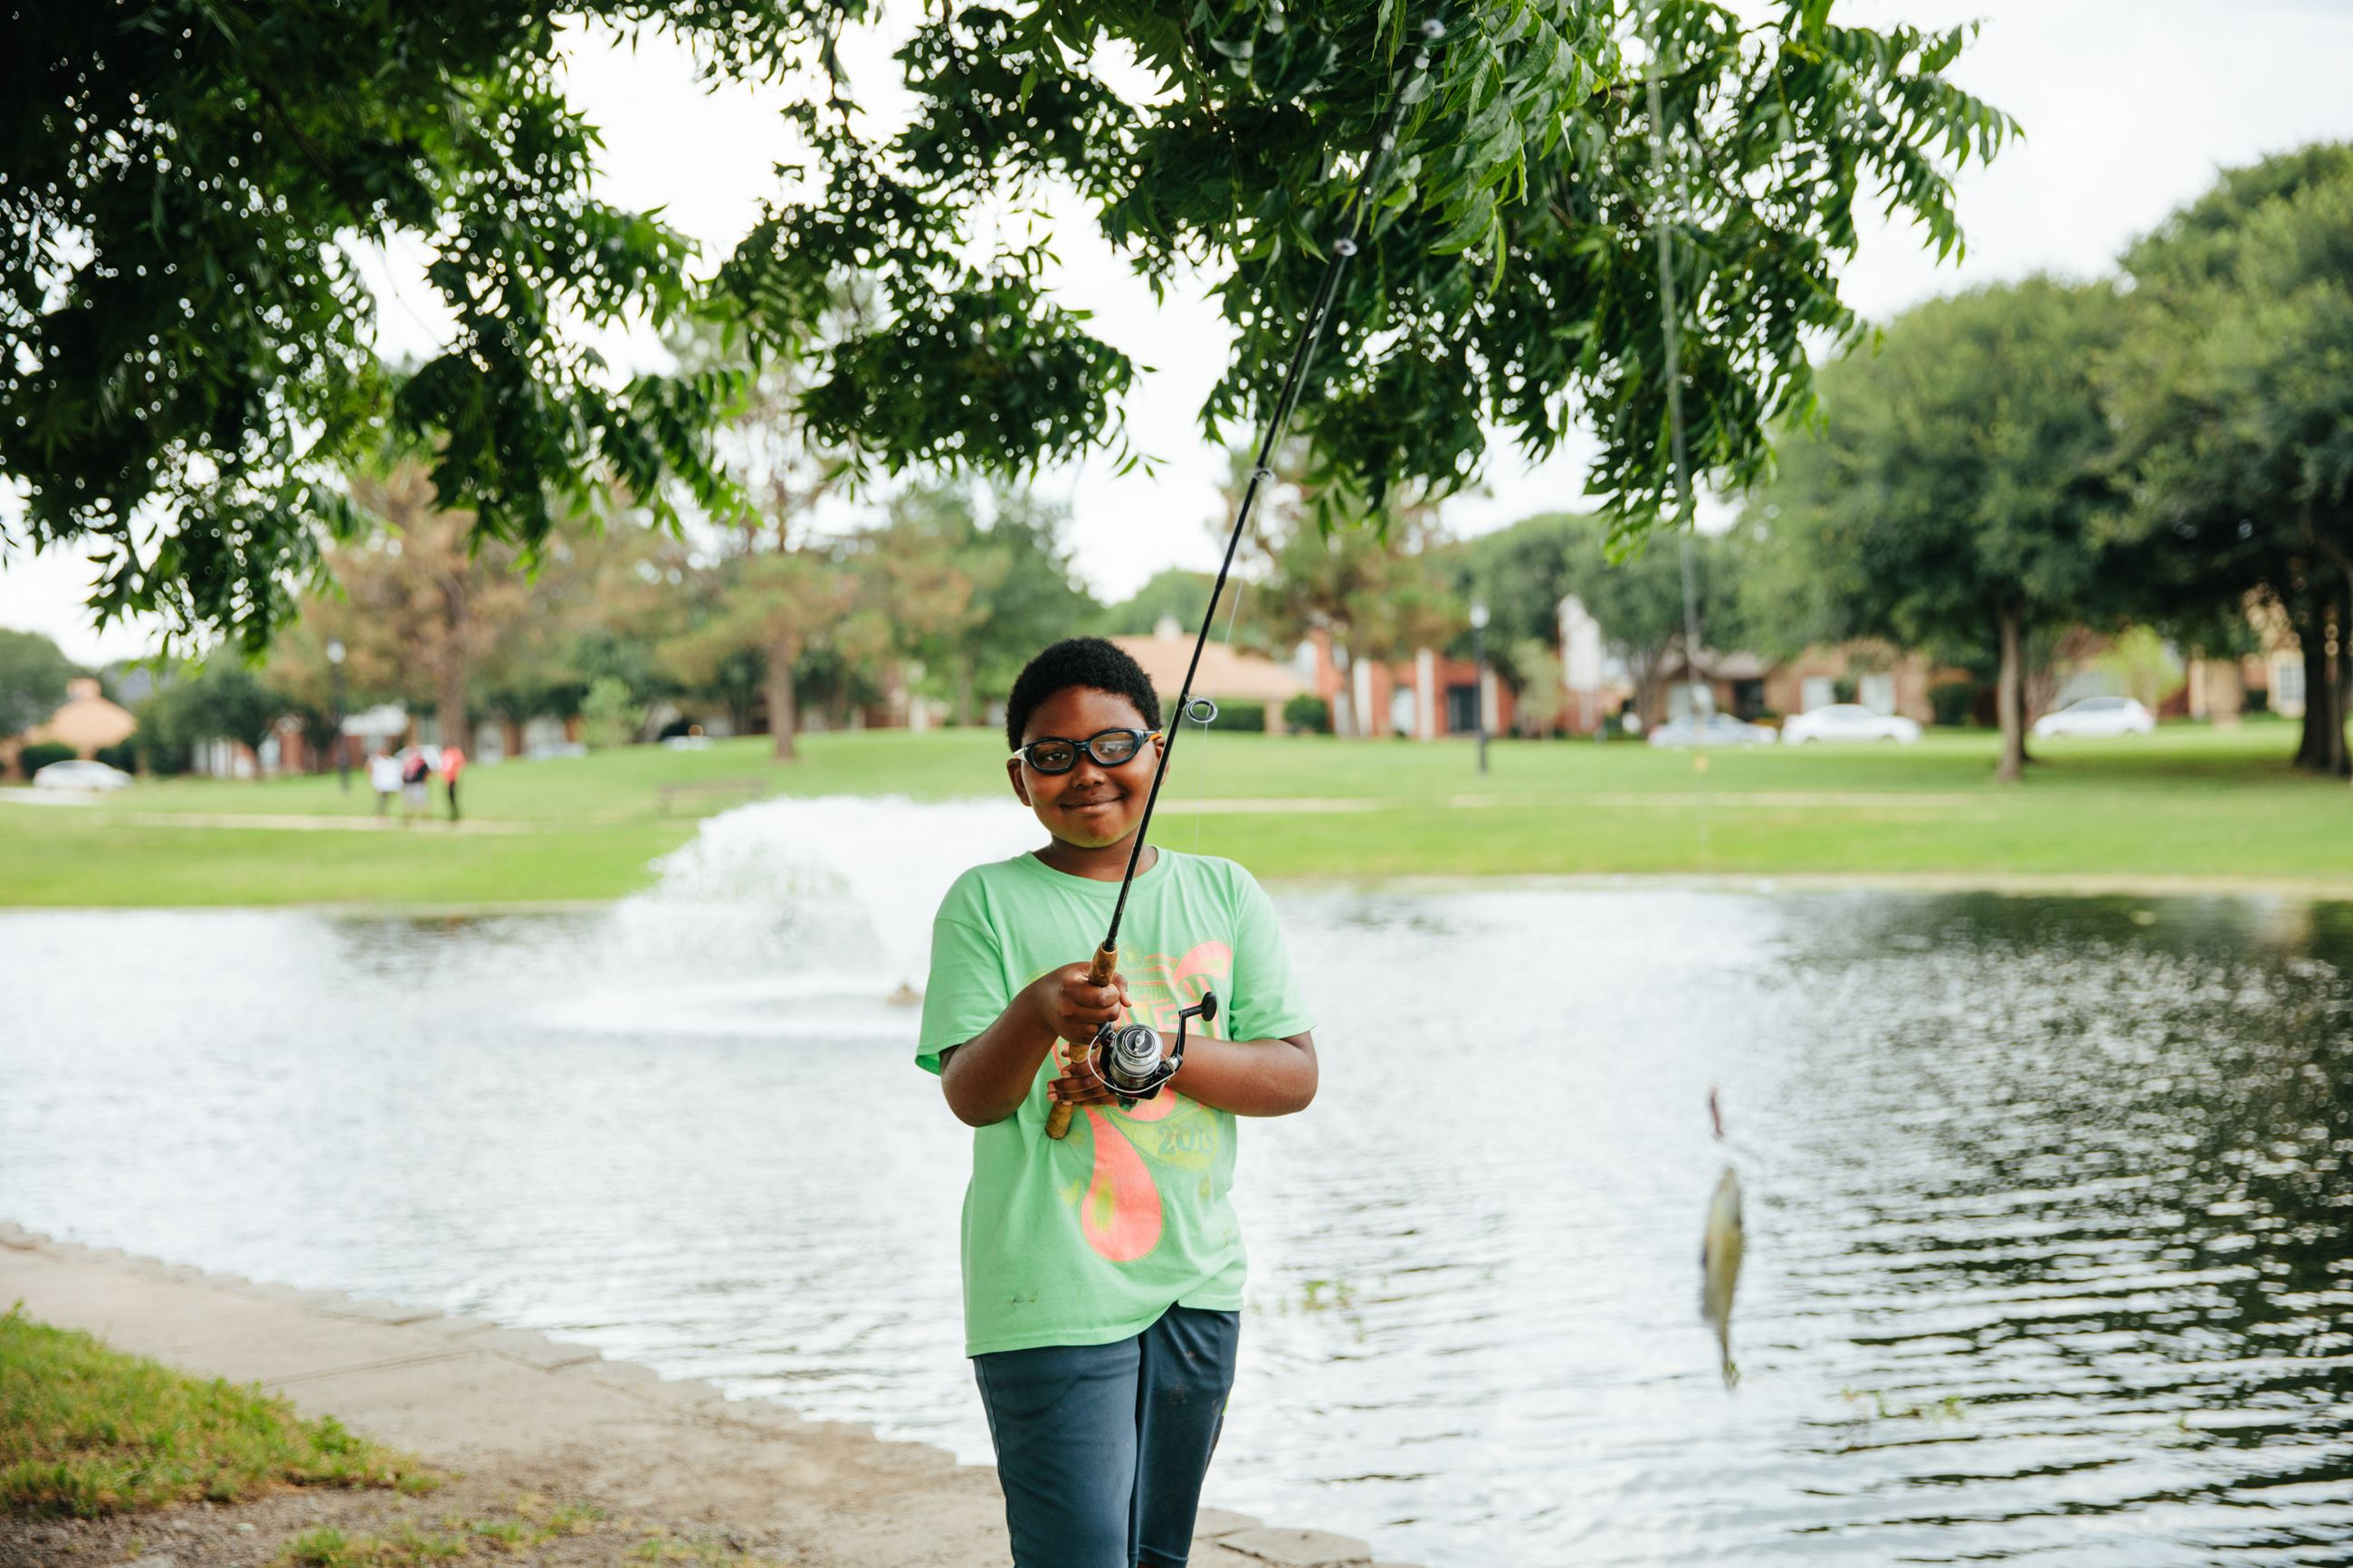 Fishing at Bradford Park Pond